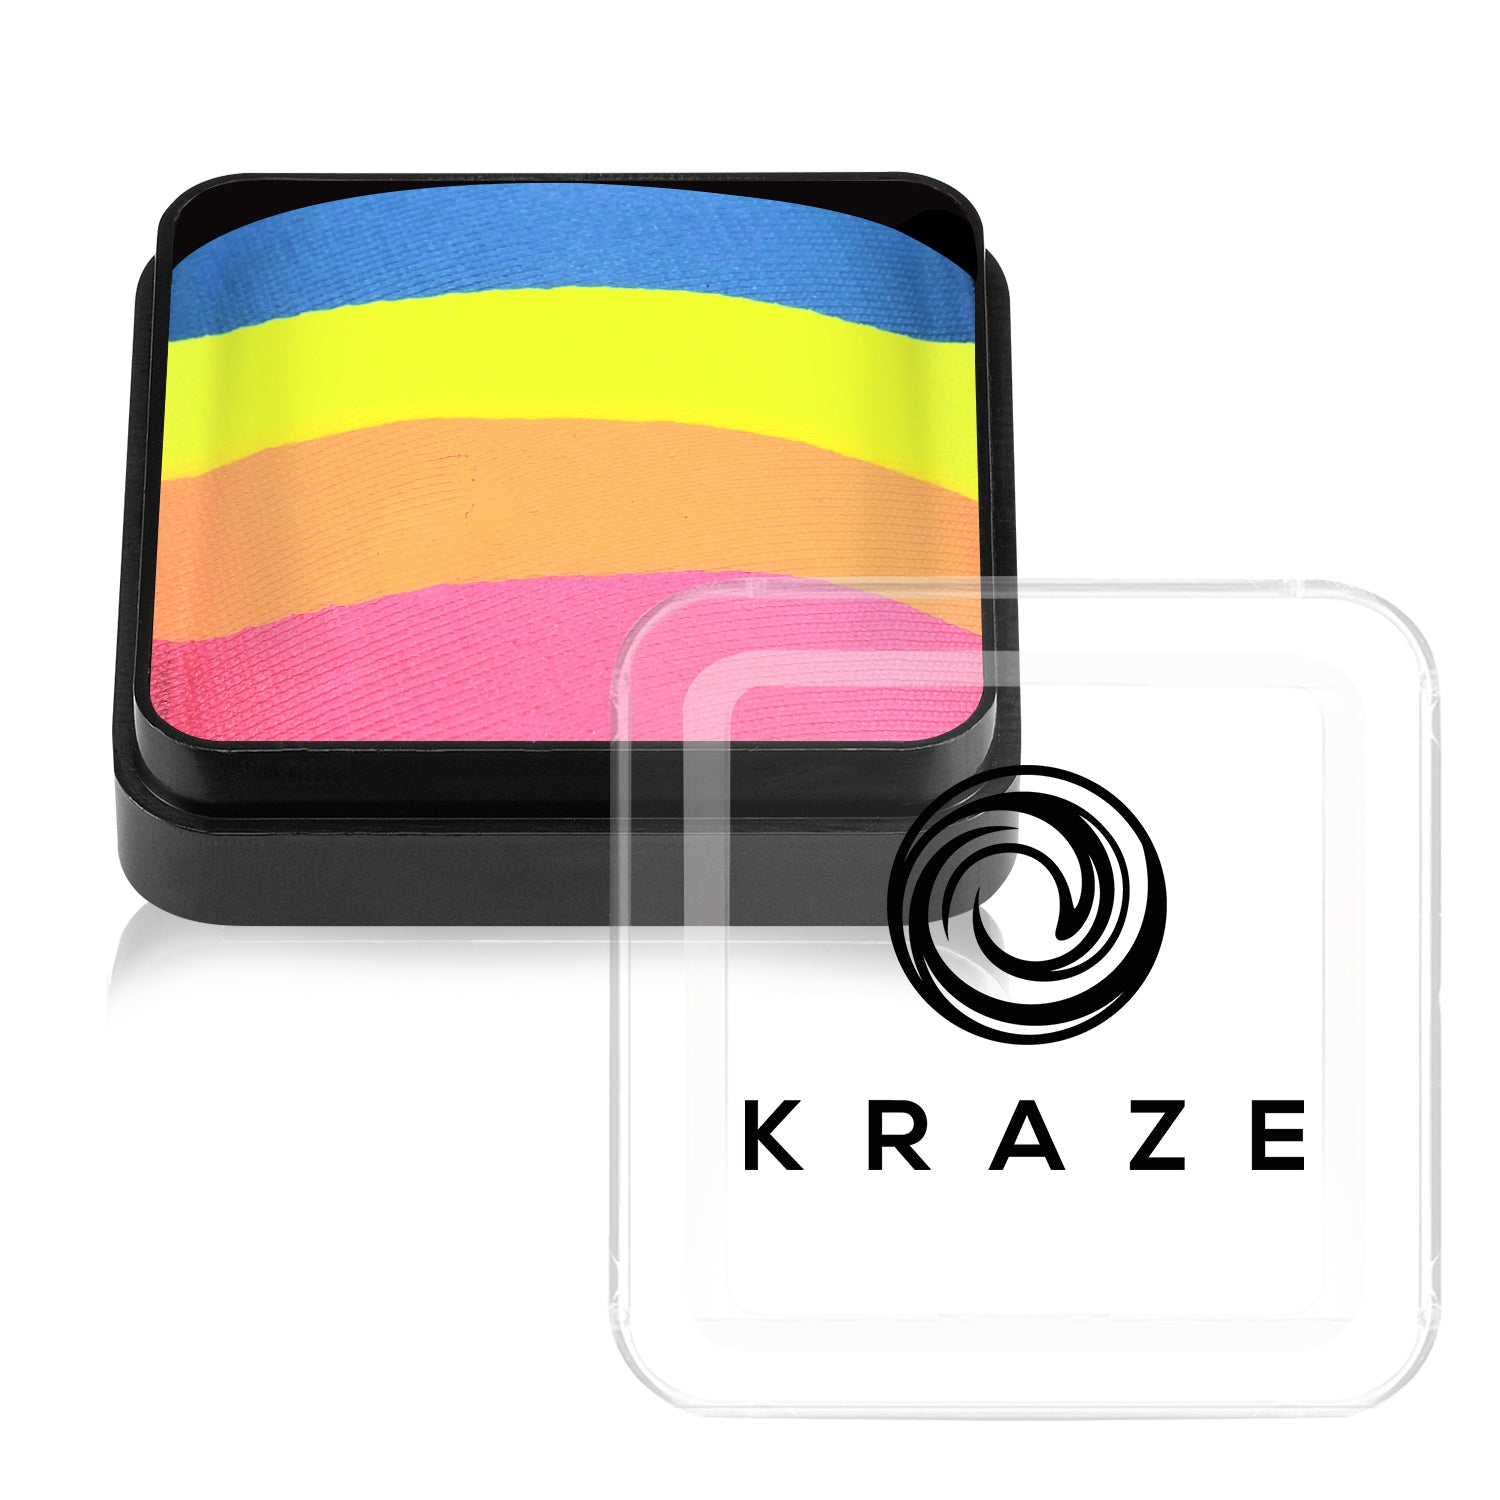 Kraze Neon Dome Cake - 25 gm - Wish